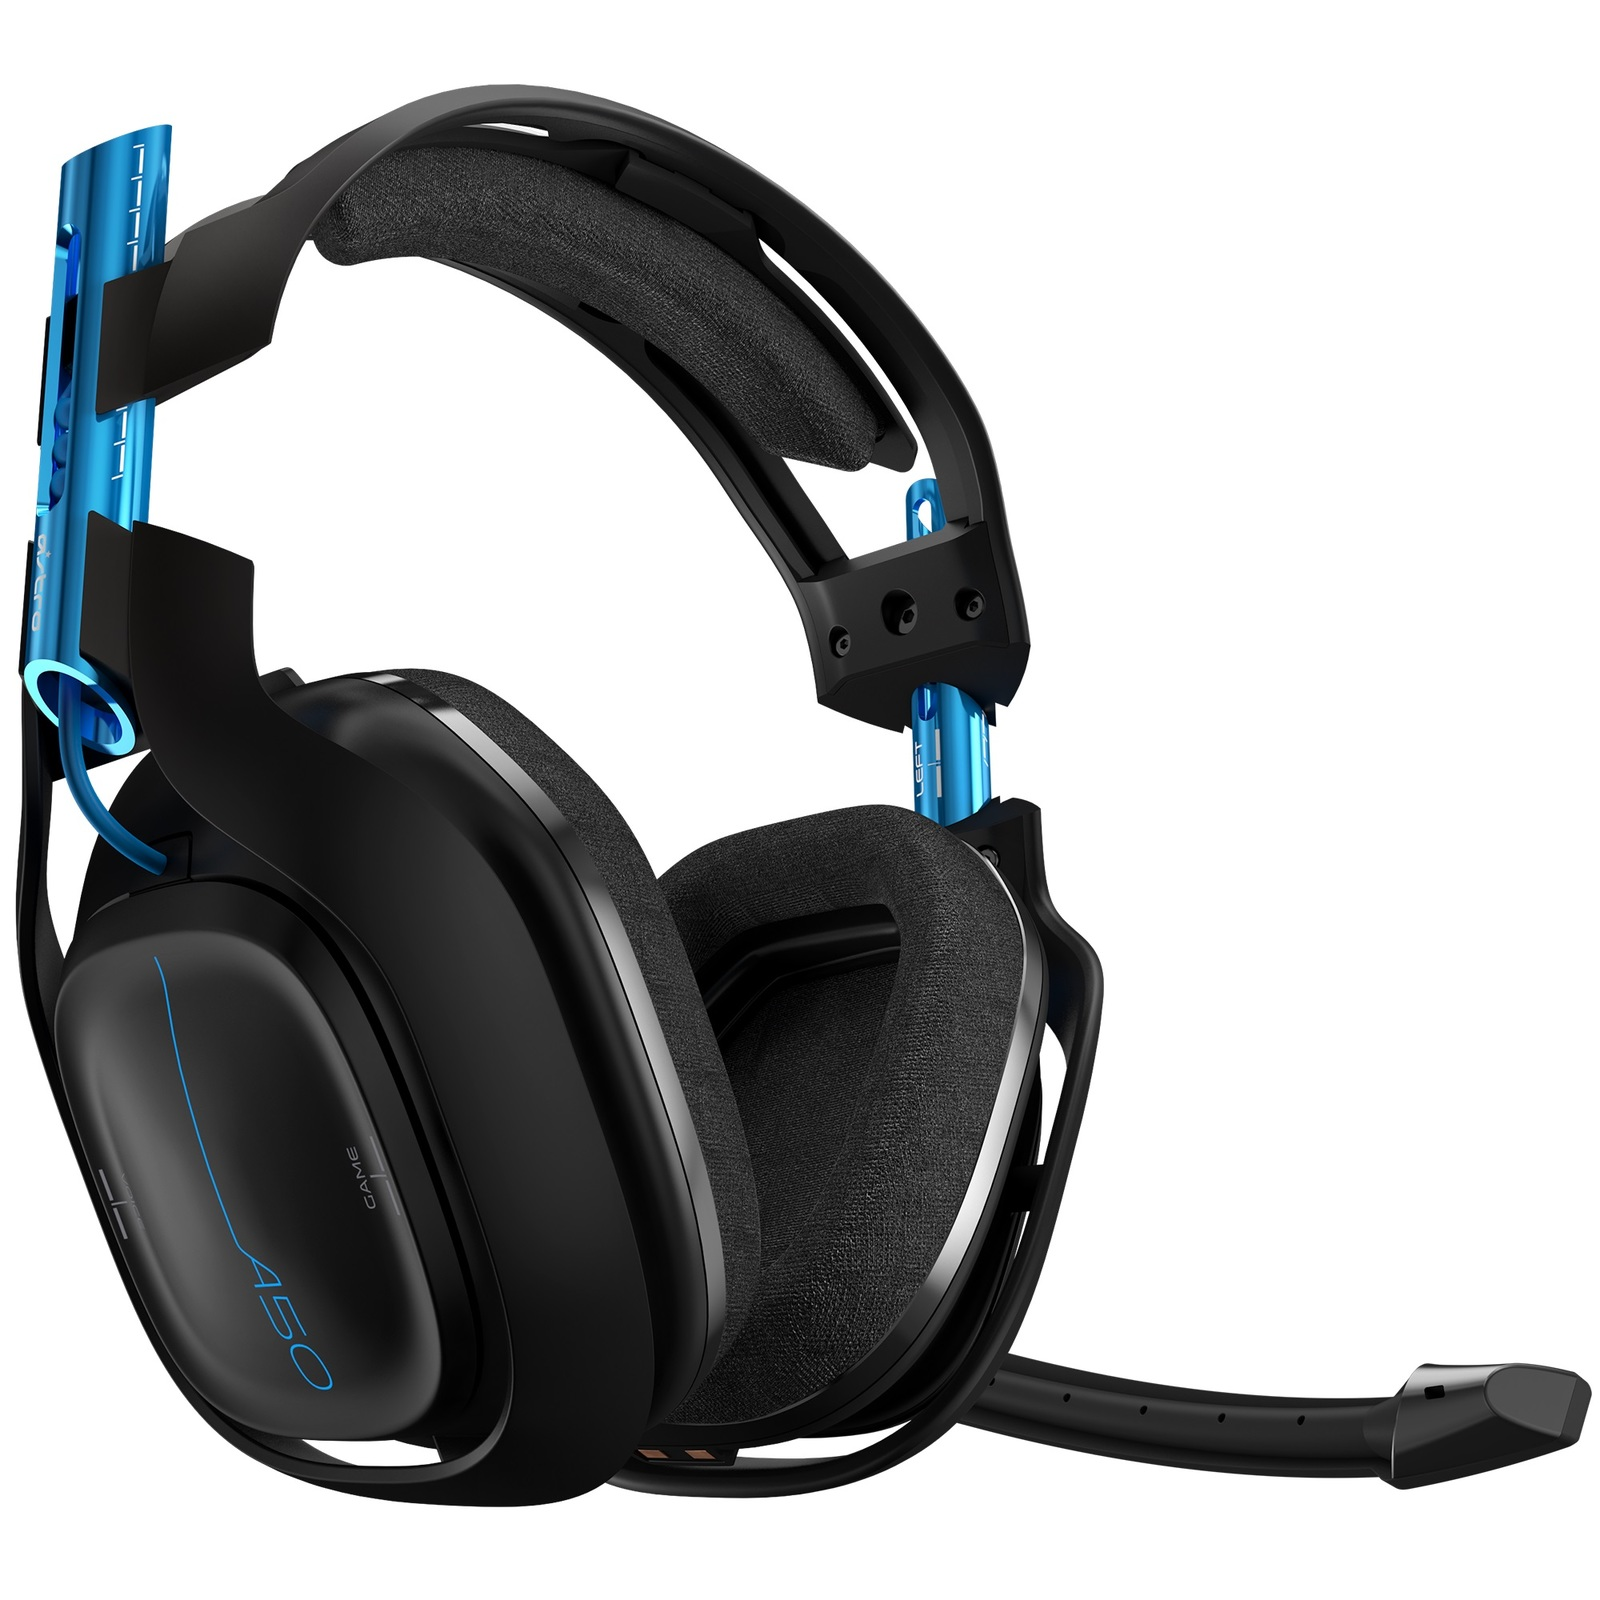 Astro A50 Wireless Headset (PS4 & PC) for PS4 image